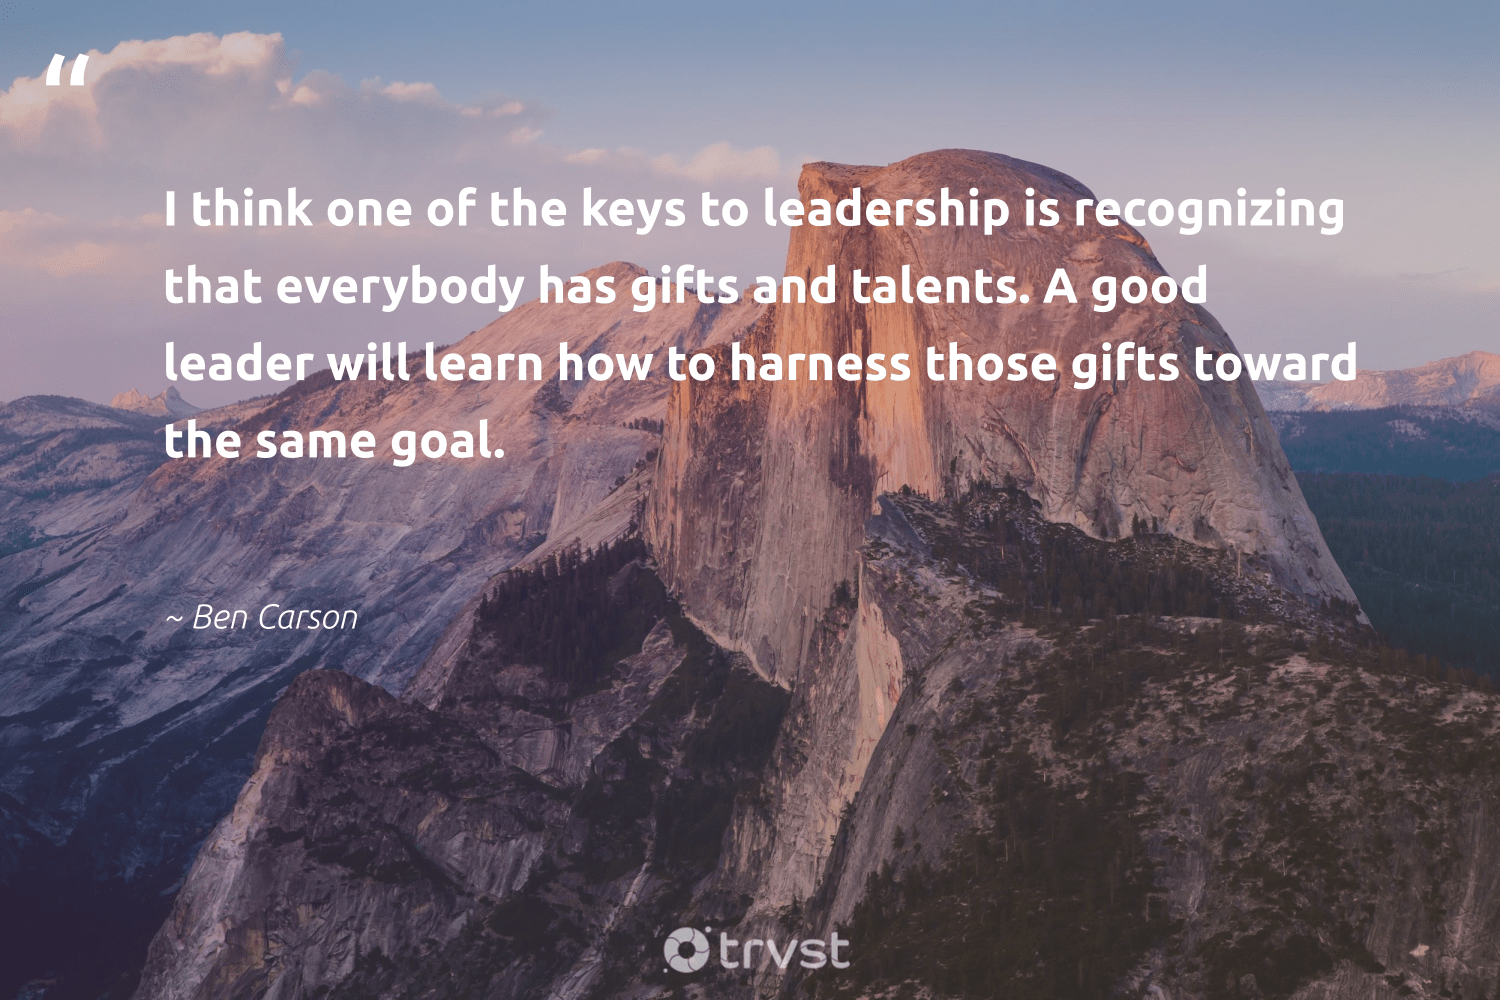 """I think one of the keys to leadership is recognizing that everybody has gifts and talents. A good leader will learn how to harness those gifts toward the same goal.""  - Ben Carson #trvst #quotes #leadership #leadershipqualities #softskills #futureofwork #bethechange #leadershipdevelopment #begreat #nevergiveup #takeaction #leadershipskills"